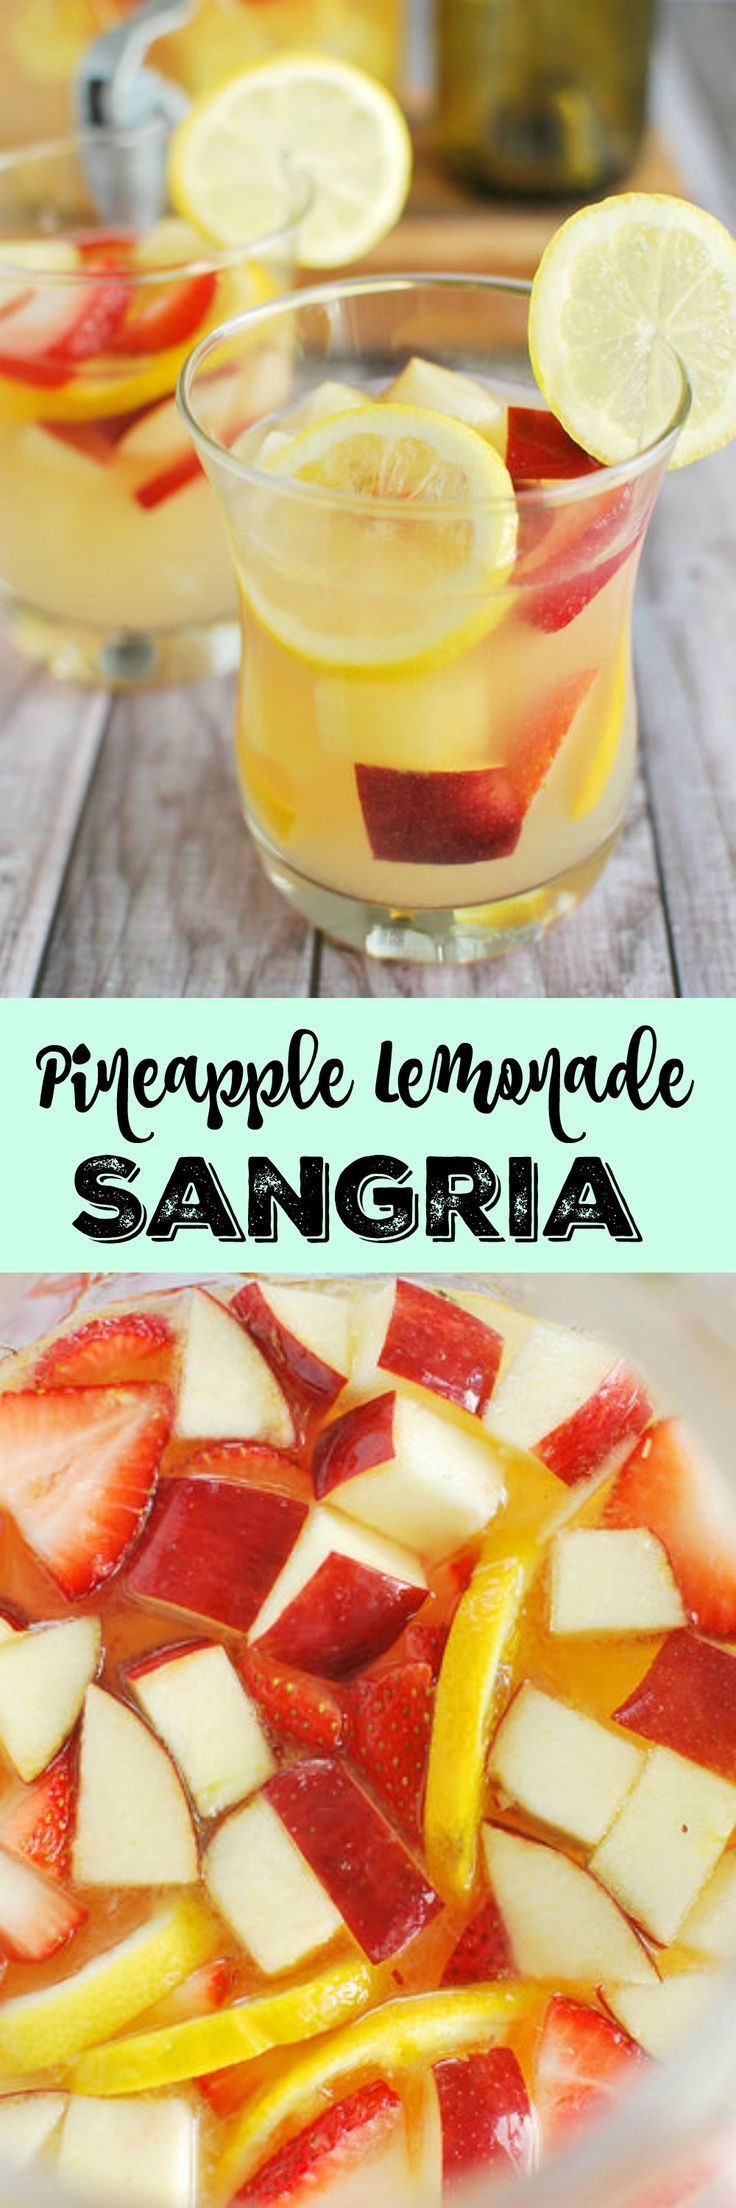 Pineapple Lemonade Sangria - the ultimate summer drink recipe! White wine, lemonade, and rum with tons of fresh fruit mixed in!